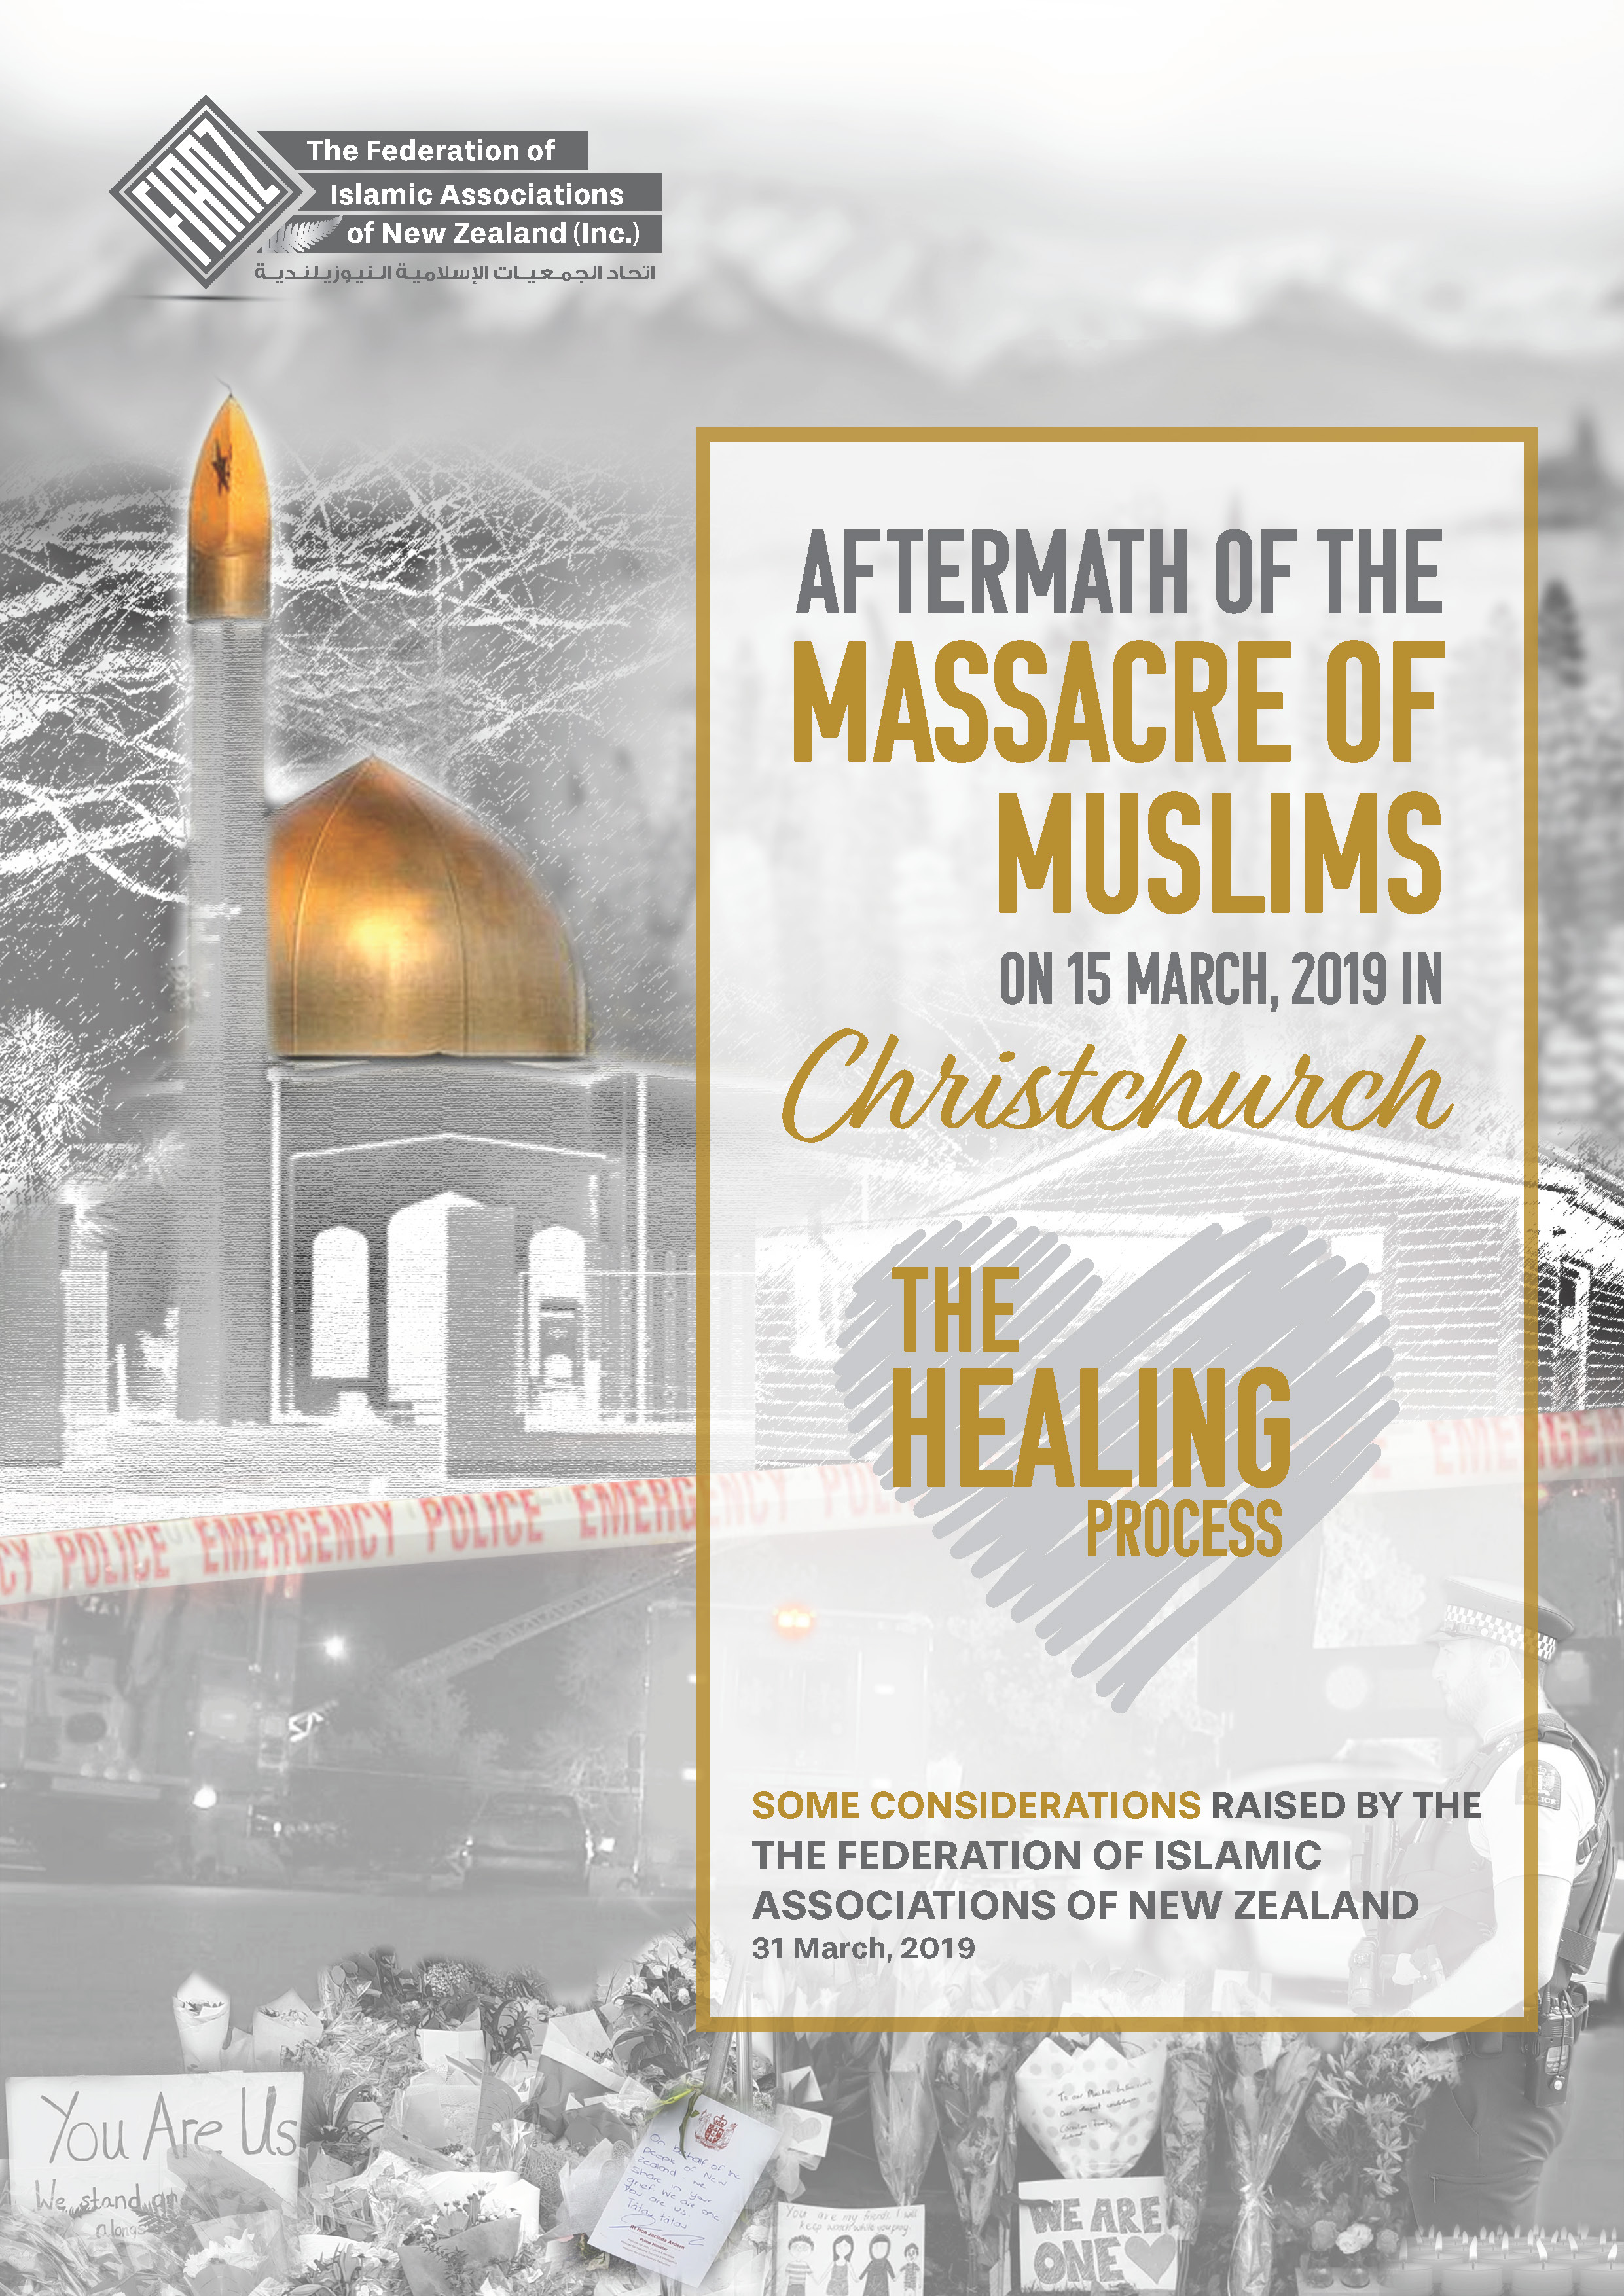 Christchurch – The Federation of Islamic Associations of New